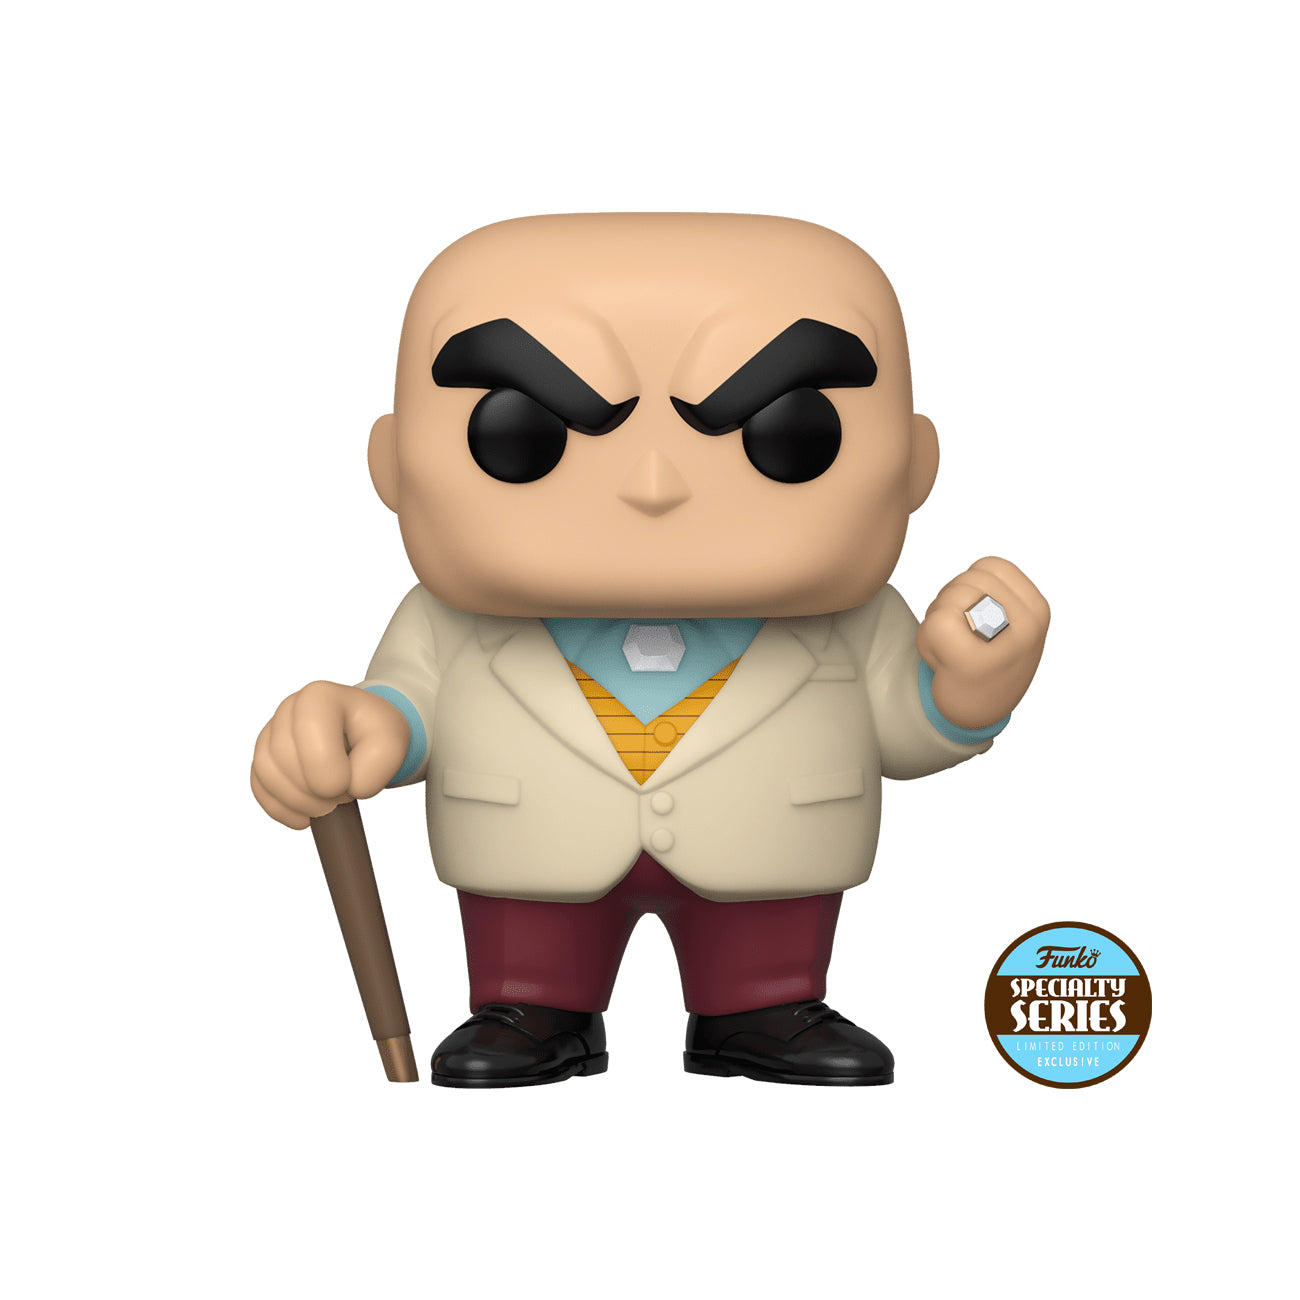 Marvel 80th First Appearance Kingpin Specialty Series Exclusive (Not Mint)